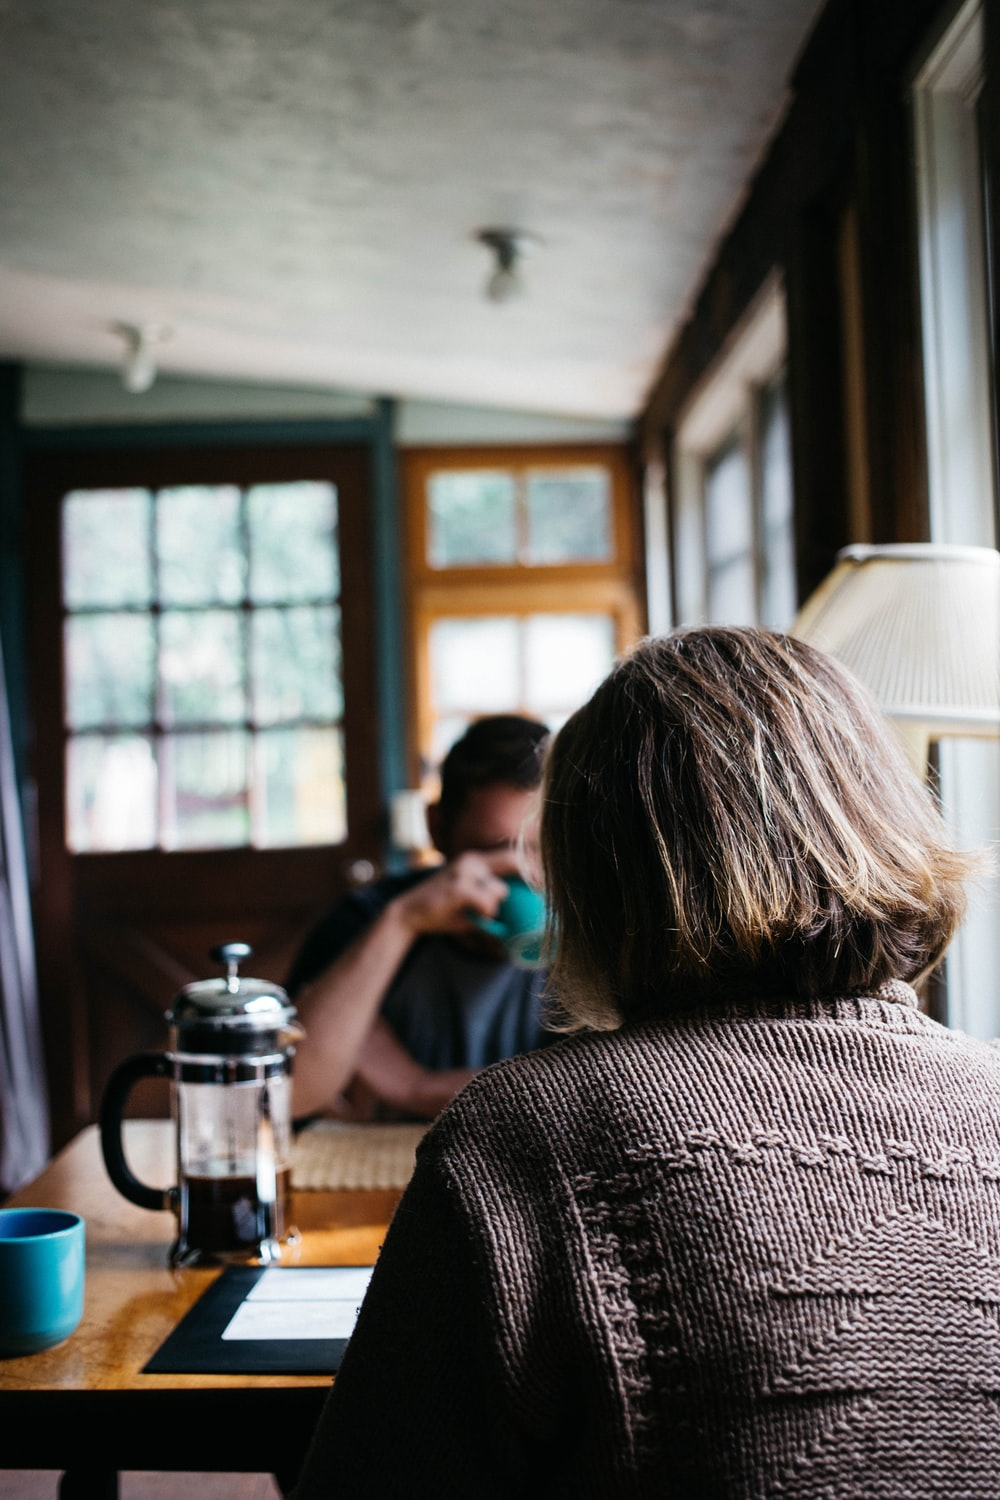 A woman and man sit across a cafe table with mugs and a french press